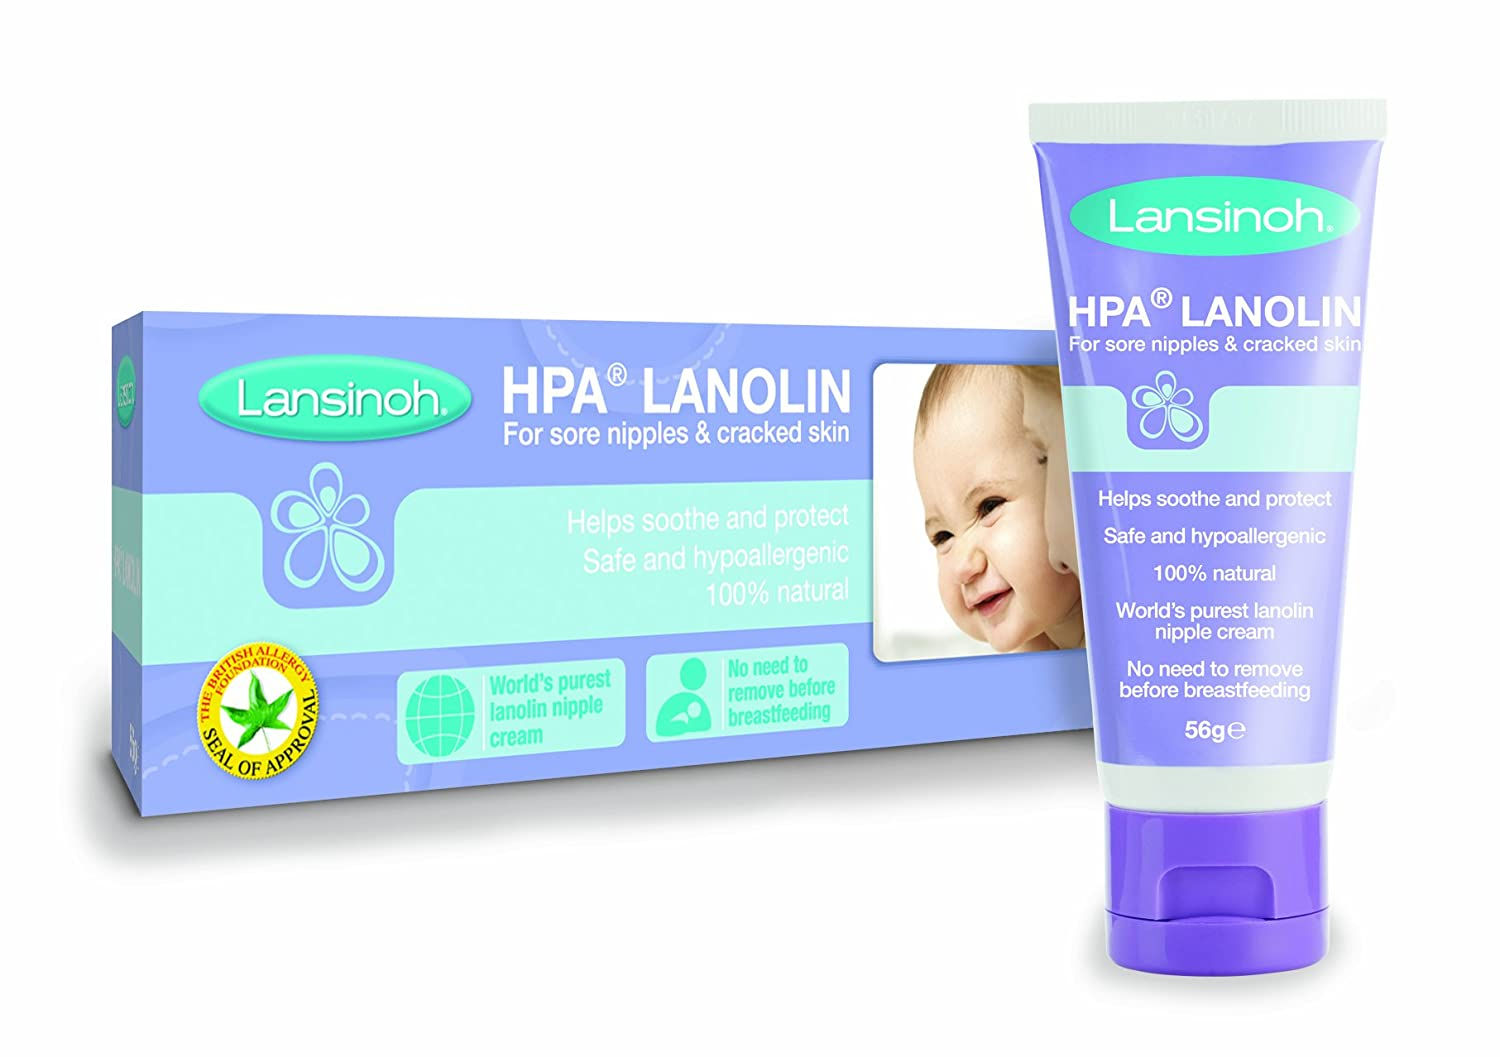 Lansinoh HPA 40ml Cream for Sore Nipples and Cracked Skin HPA Lanolin Baby Babycare lanisoh